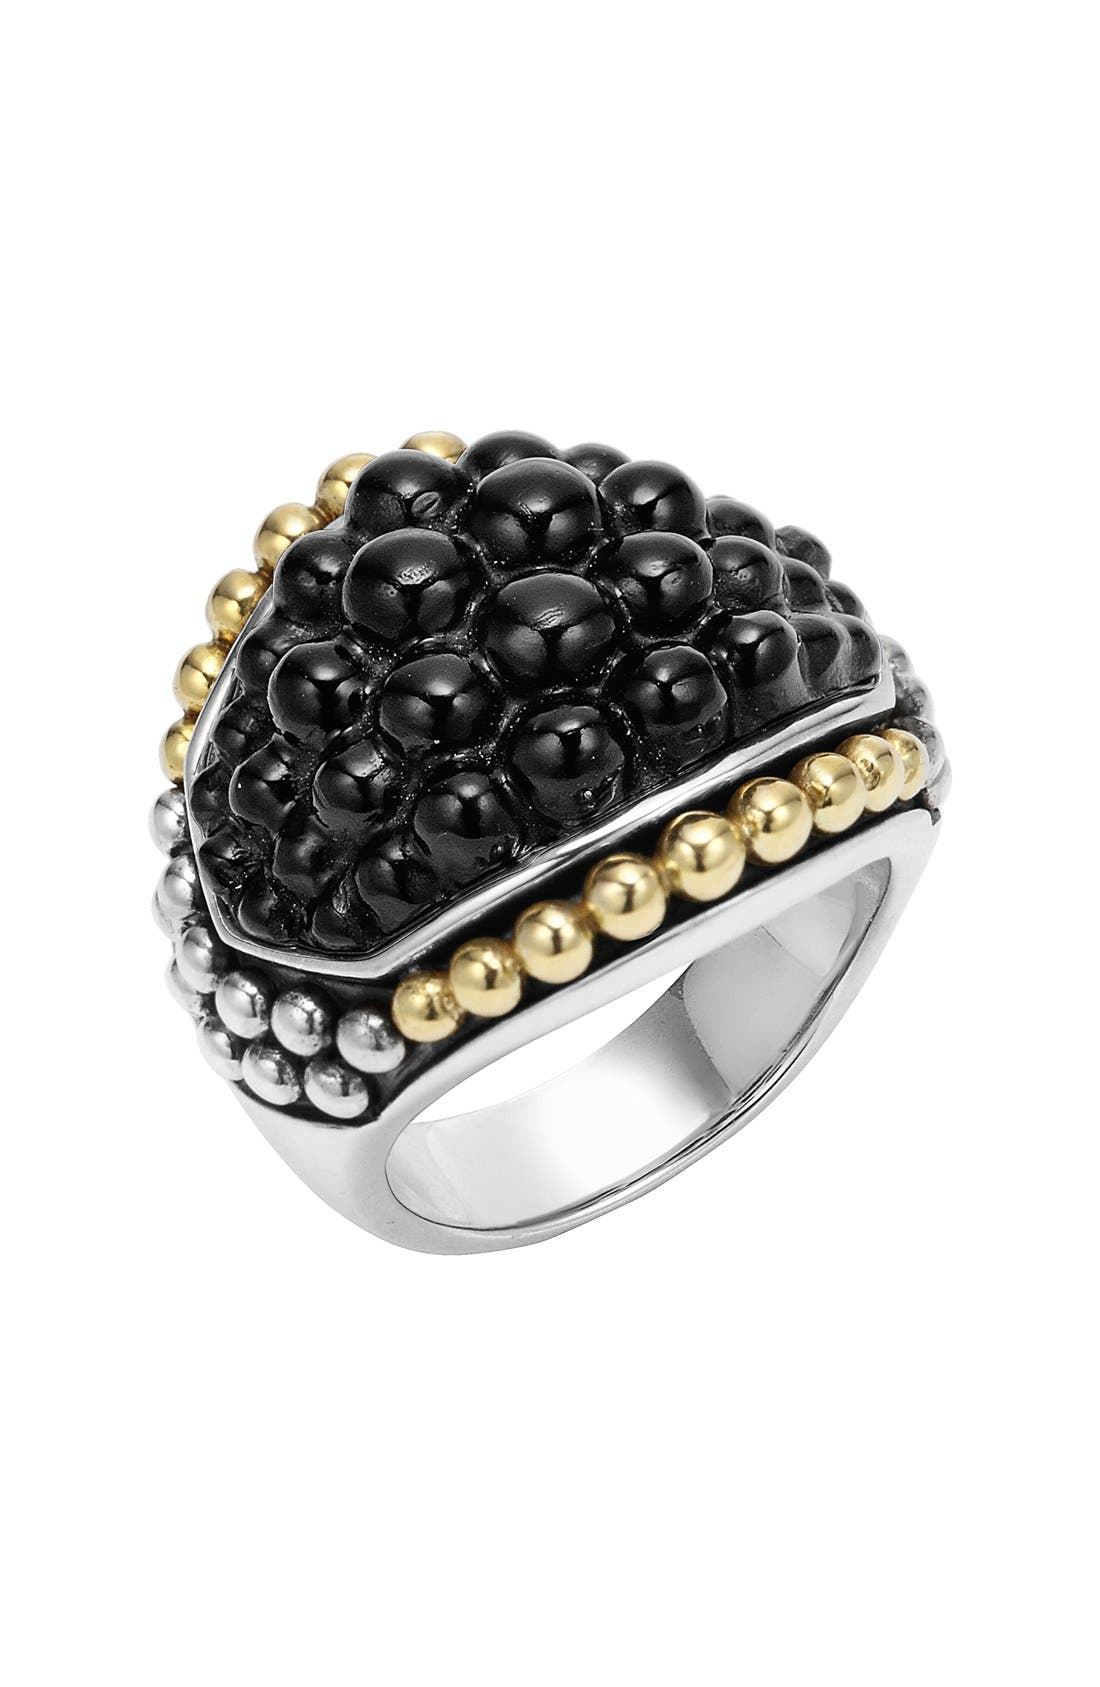 LAGOS 'Black Caviar' Dome Ring